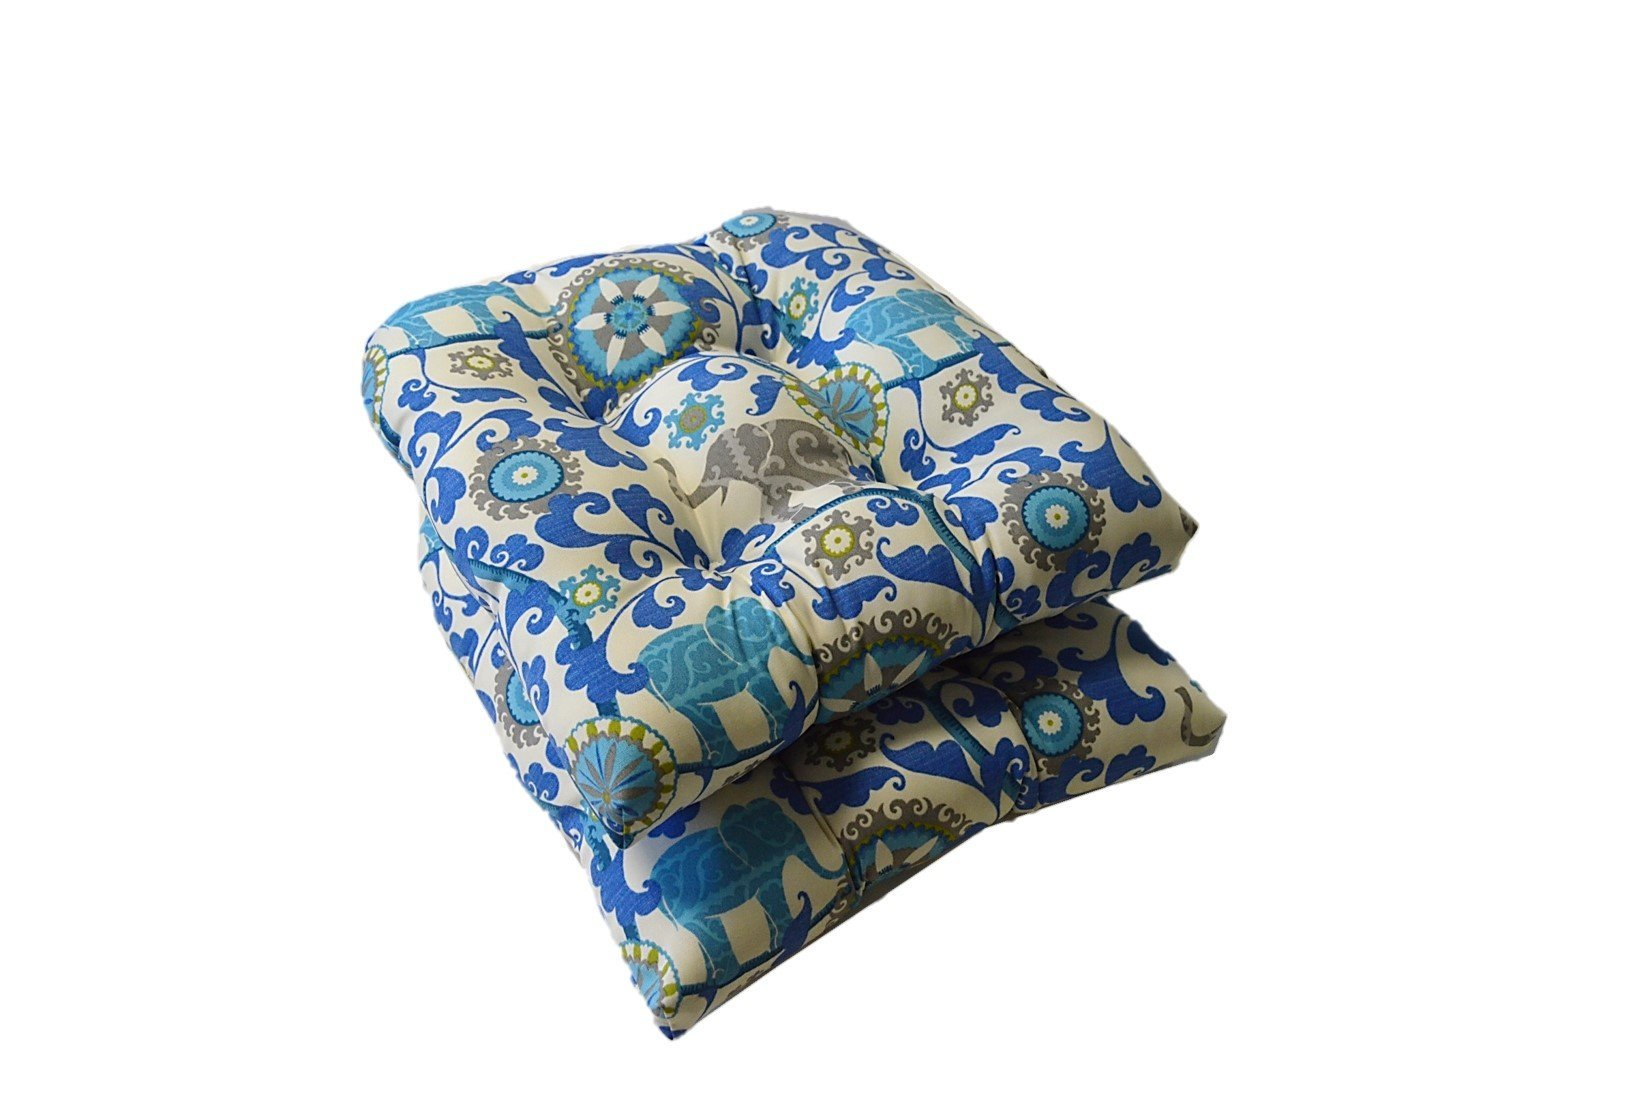 Set of 2 - Universal Tufted U-shape Cushions for Wicker Chair Seat - Sapphire Blue, Turquoise, Green, Gray Bohemian Elephant